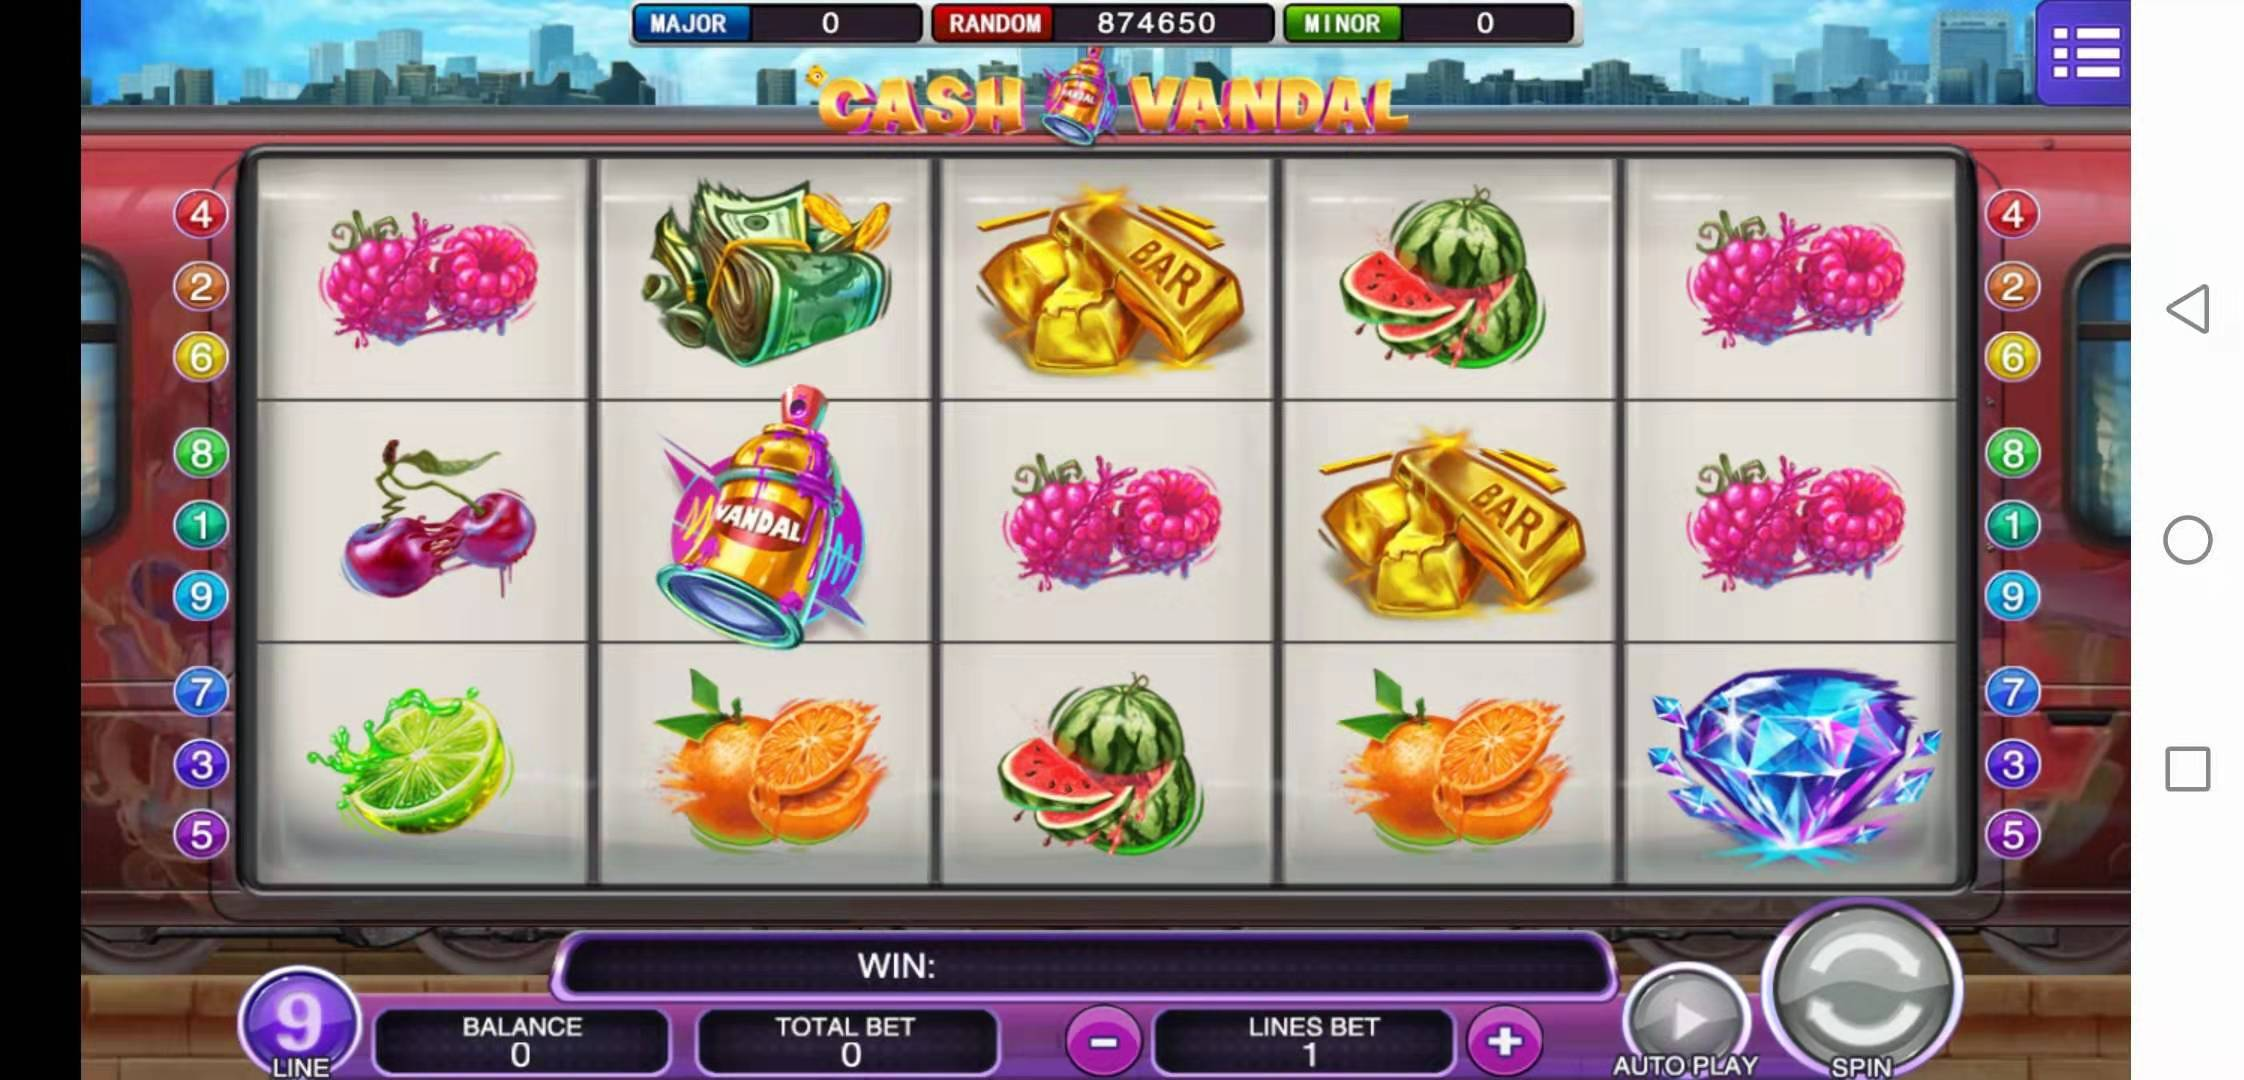 London, Paris & Berlin, Let's Travelling in Europe with Cash Vandal Slot Machine